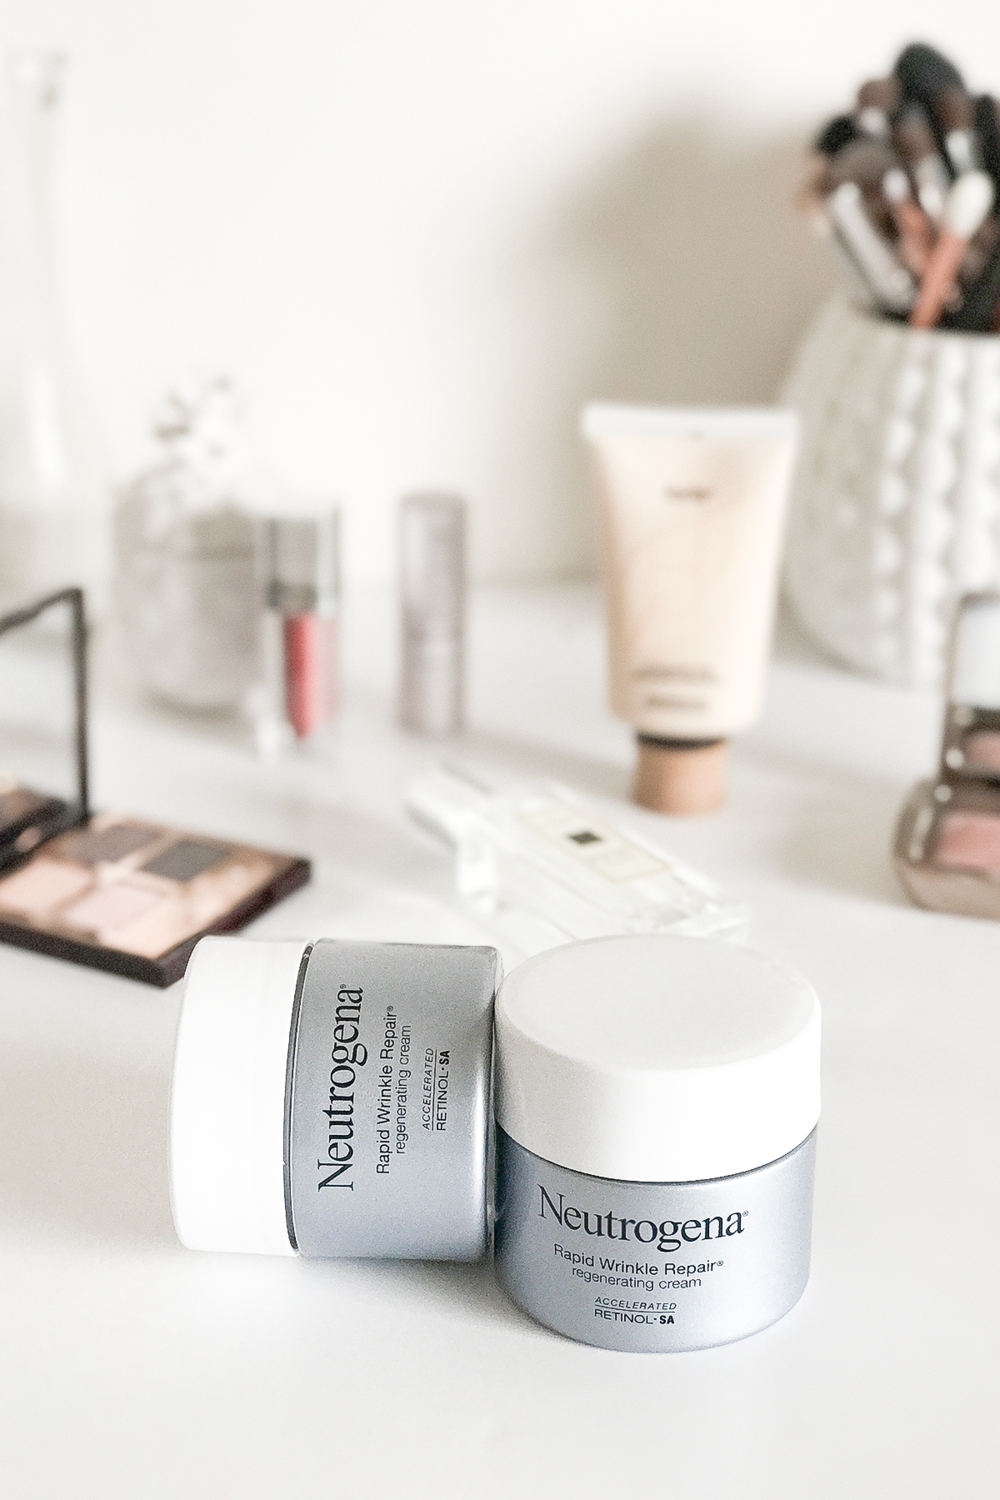 Neutrogena Rapid Wrinkle Repair Regenerating Cream | A Girl, Obsessed